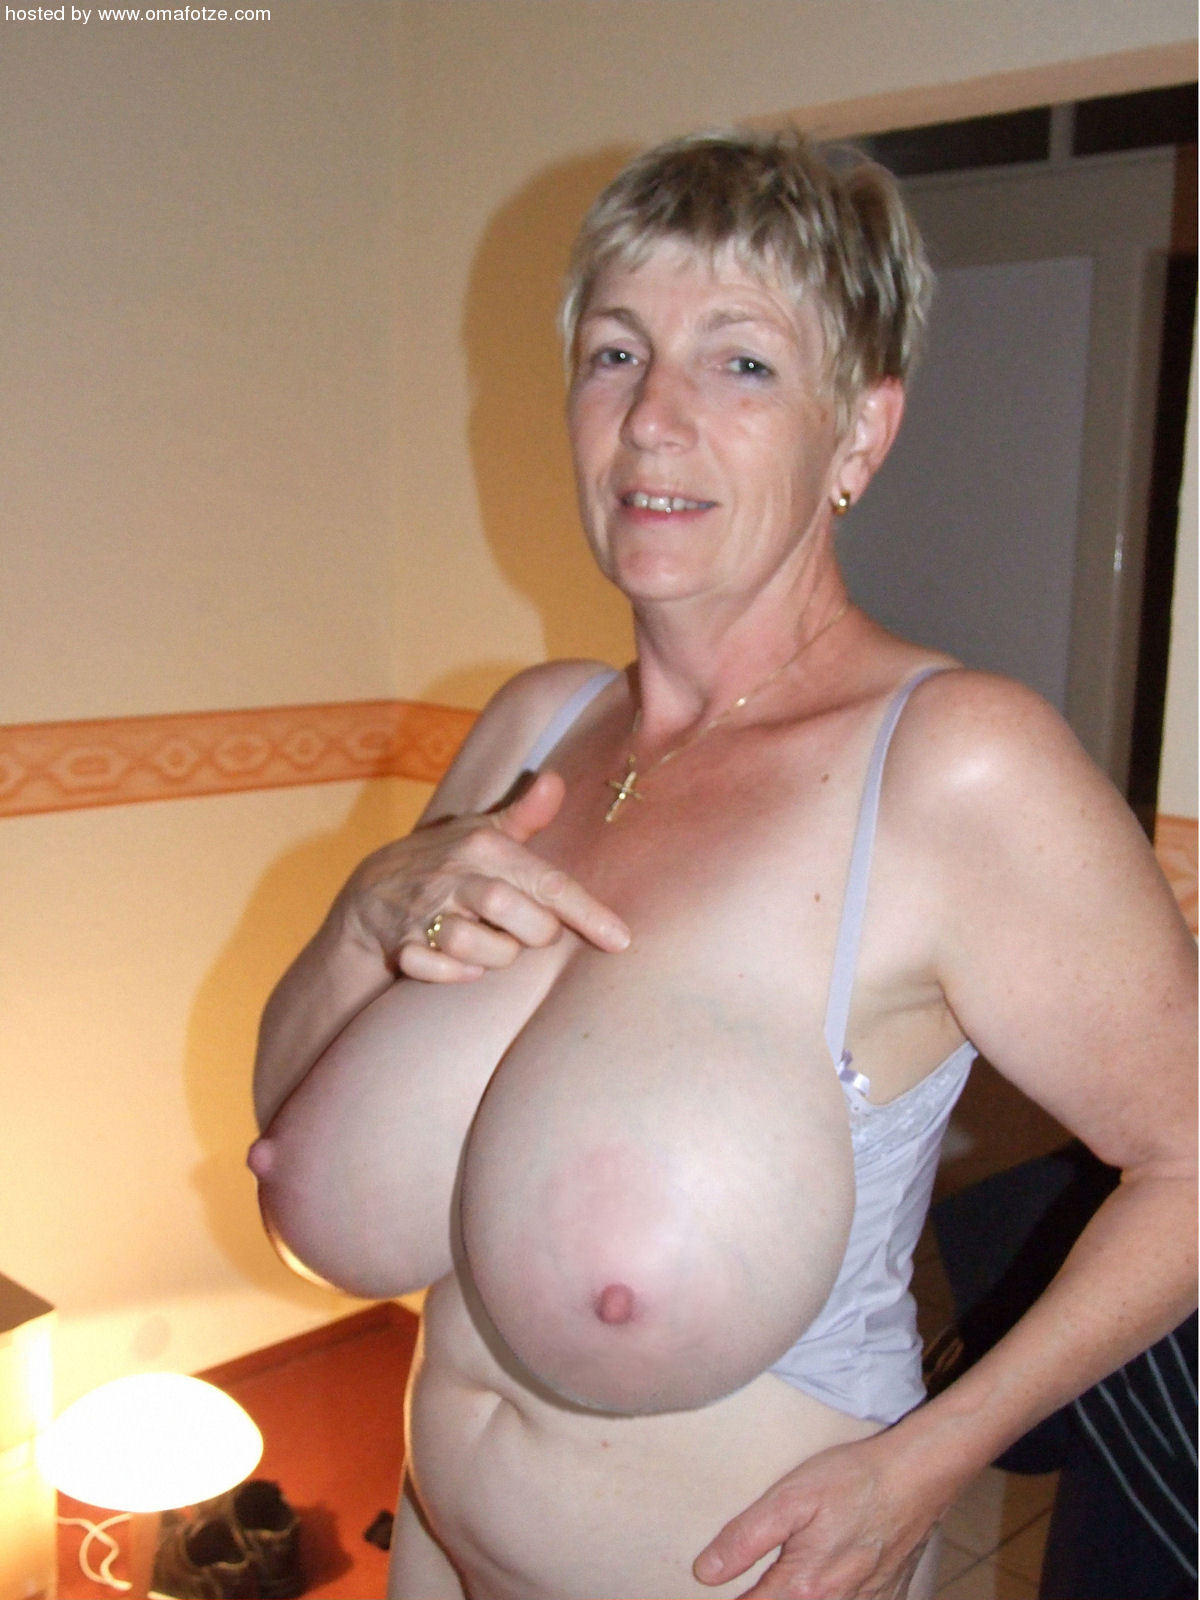 Fucking picture galleries busty mature nudists hell WTF